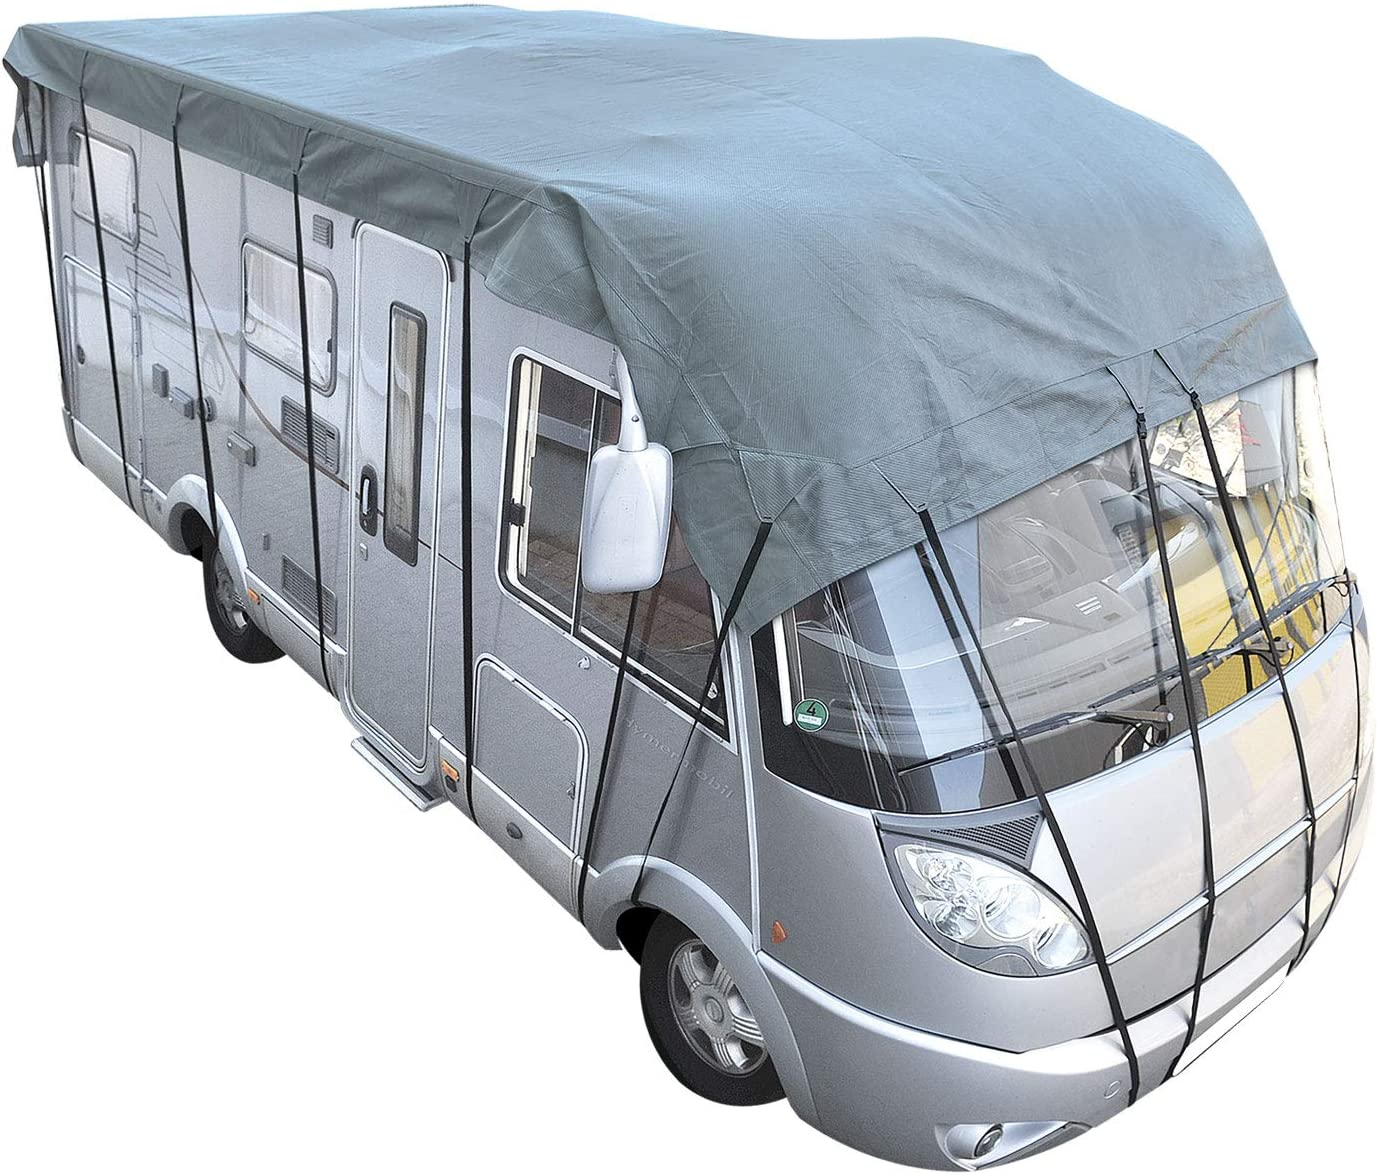 Cartrend 10248 Roof Protection Tarpaulin Roof Cover Caravan Cover Caravan Caravan Cover Campervan Roof Protection Campervan Cover Dimensions 5.0 x 3 m